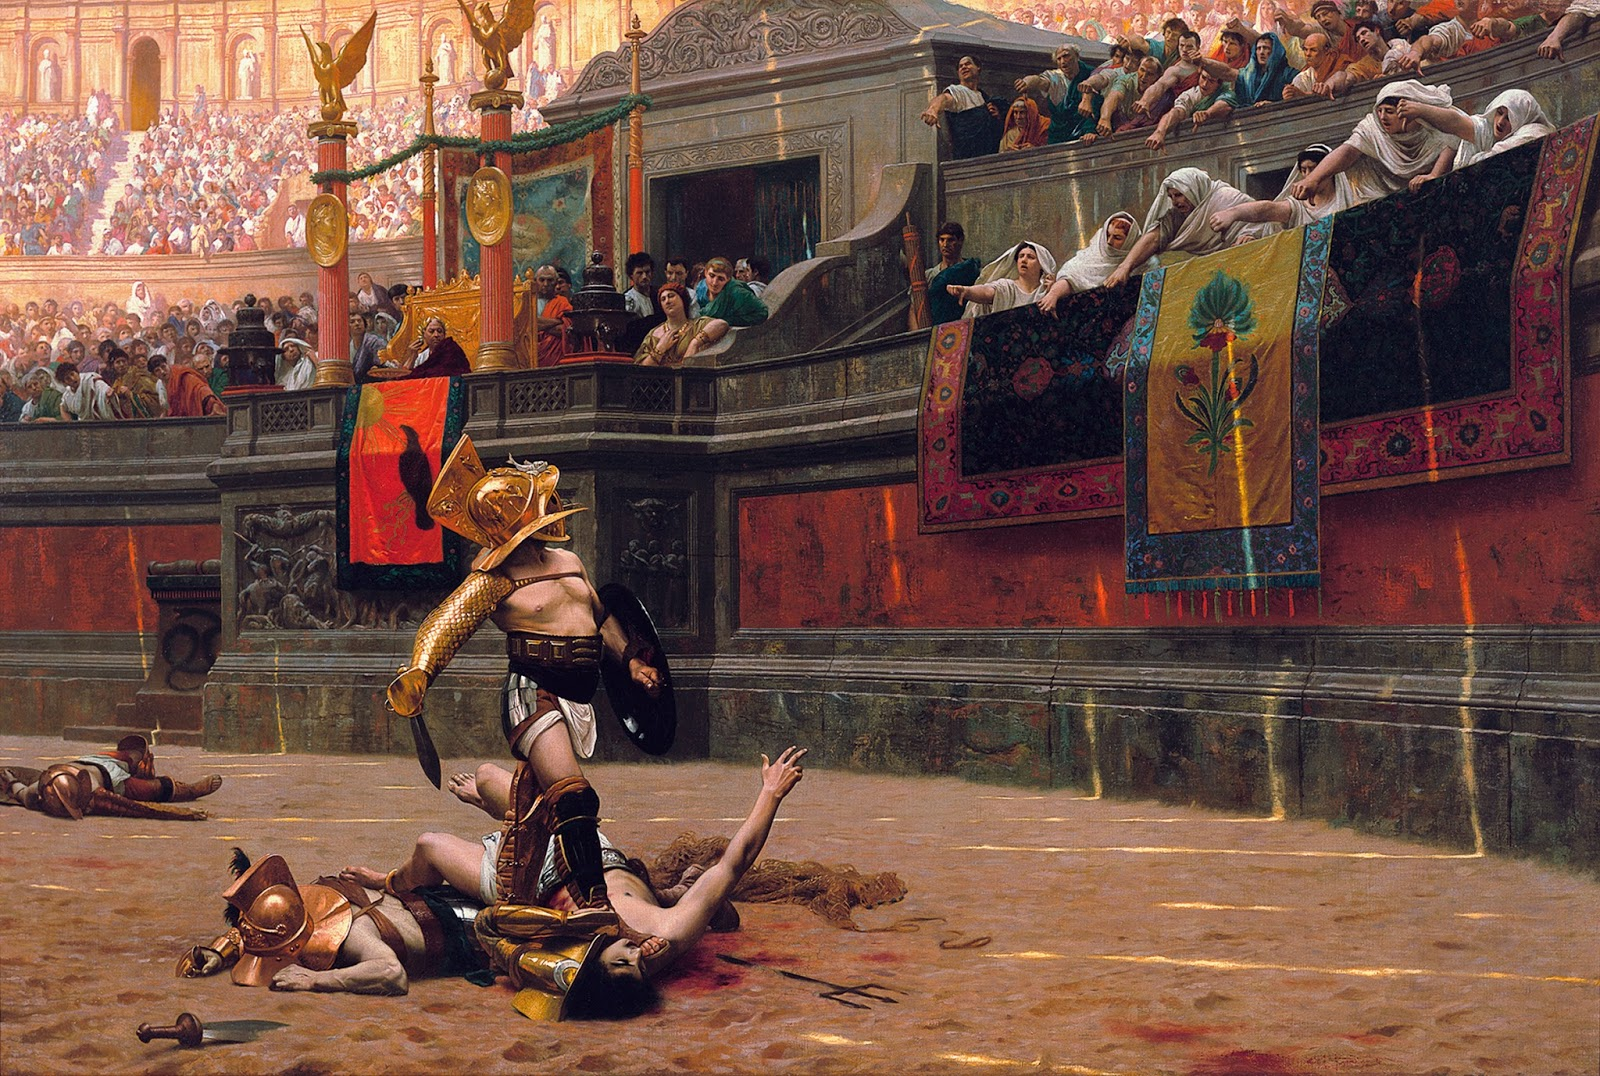 the life and history of gladiators in ancient rome Roman gladiators have long been a source of fascination and confusion, often depicted as maltreated slaves drawn from ancient rome's enemies, forced to fight to the death in brutal and blood-curdling displays of mortal combat and though such acts certainly occurred, the truth is rather more complex.